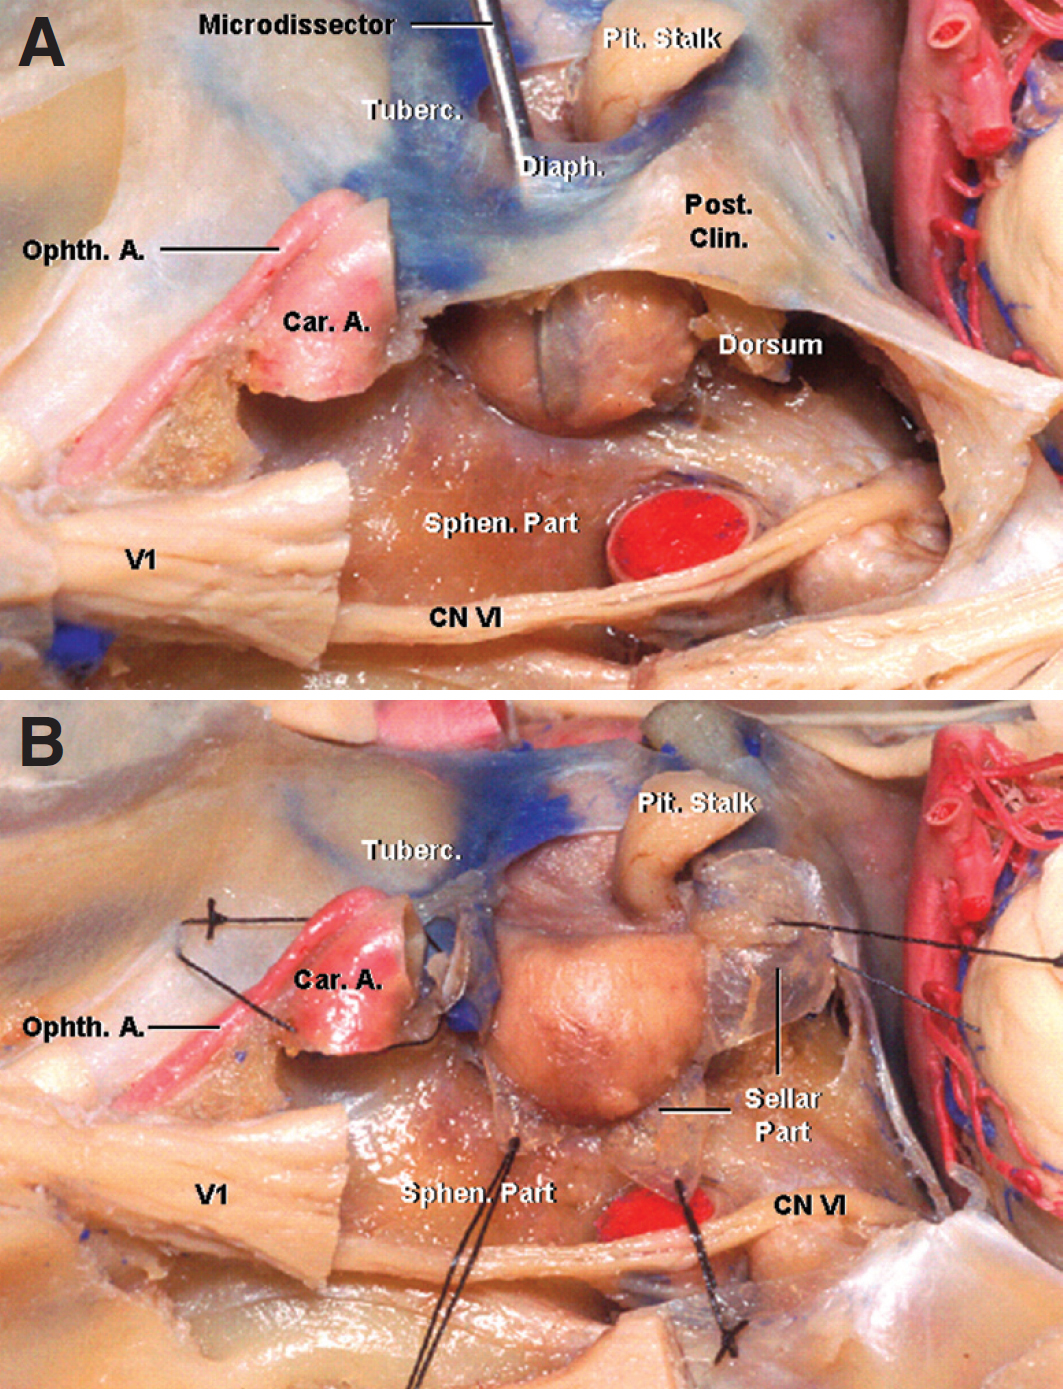 Figure 5. The medial wall of the cavernous sinus is shown. A, the contents of the left cavernous sinus have been resected to expose its medial wall from a lateral perspective. A dissector is located between the pituitary gland and the medial wall. The medial wall of the cavernous sinus is composed of two sectors: sellar and sphenoidal. The sellar portion is also the lateral wall of the pituitary gland, and just one layer of dura forms it. B, the sellar portion of the medial wall has been opened to expose the pituitary gland. A., artery; Car., carotid; Clin., clinoid; CN, cranial nerve; Diaph., diaphragm; Ophth., ophthalmic; Pit., pituitary; Post., posterior; Sphen., sphenoidal; Tuberc., tuberculum. (Images courtesy of AL Rhoton, Jr.)